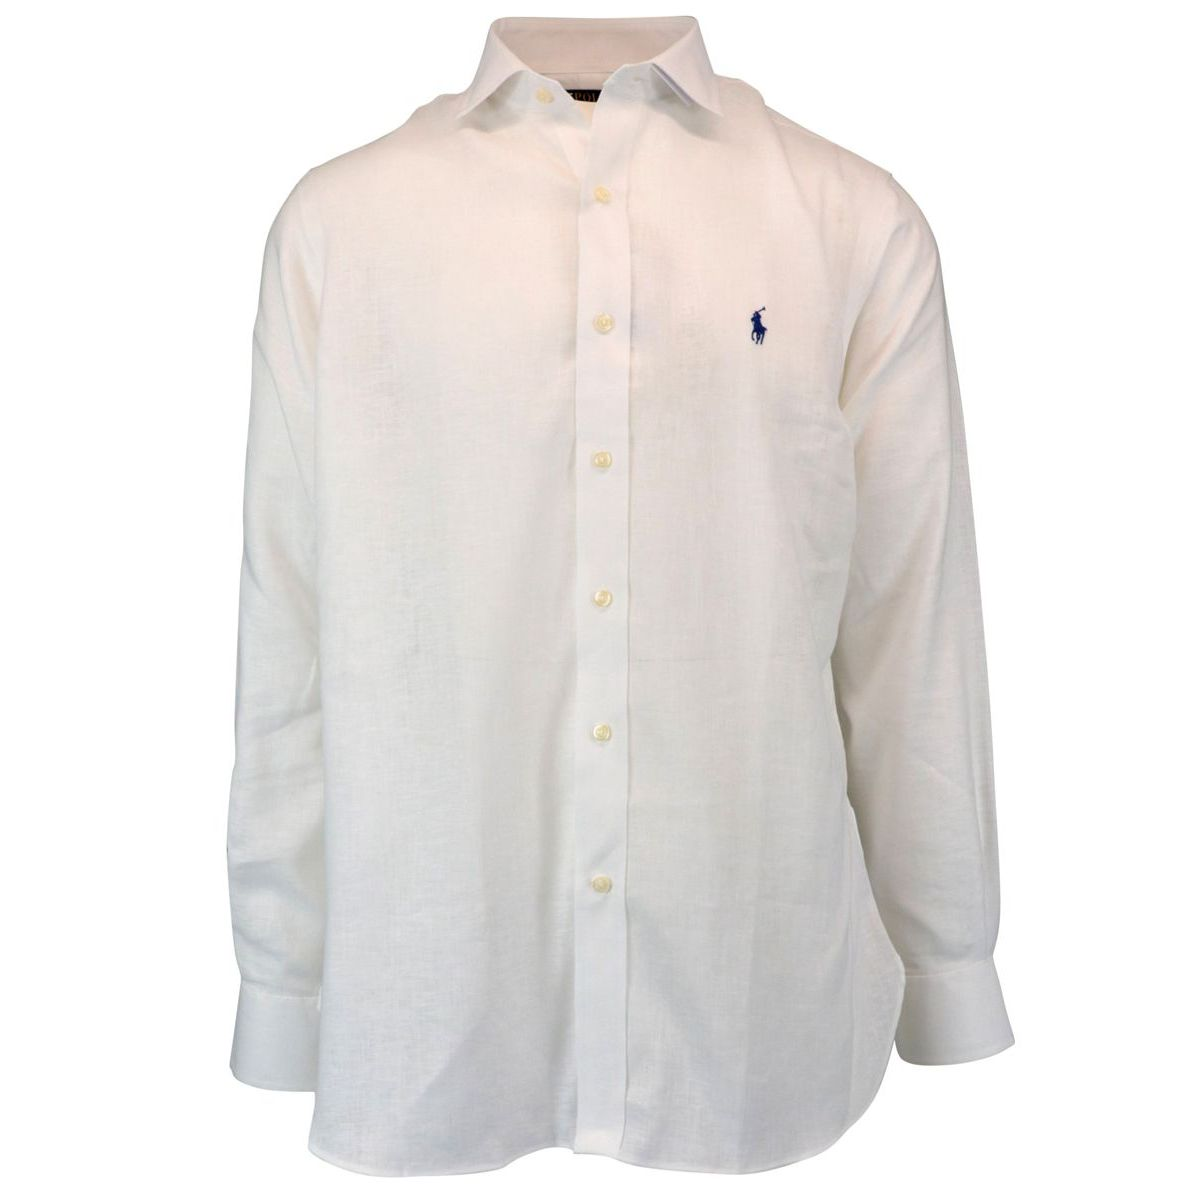 Classic Fit linen shirt with French collar White Polo Ralph Lauren